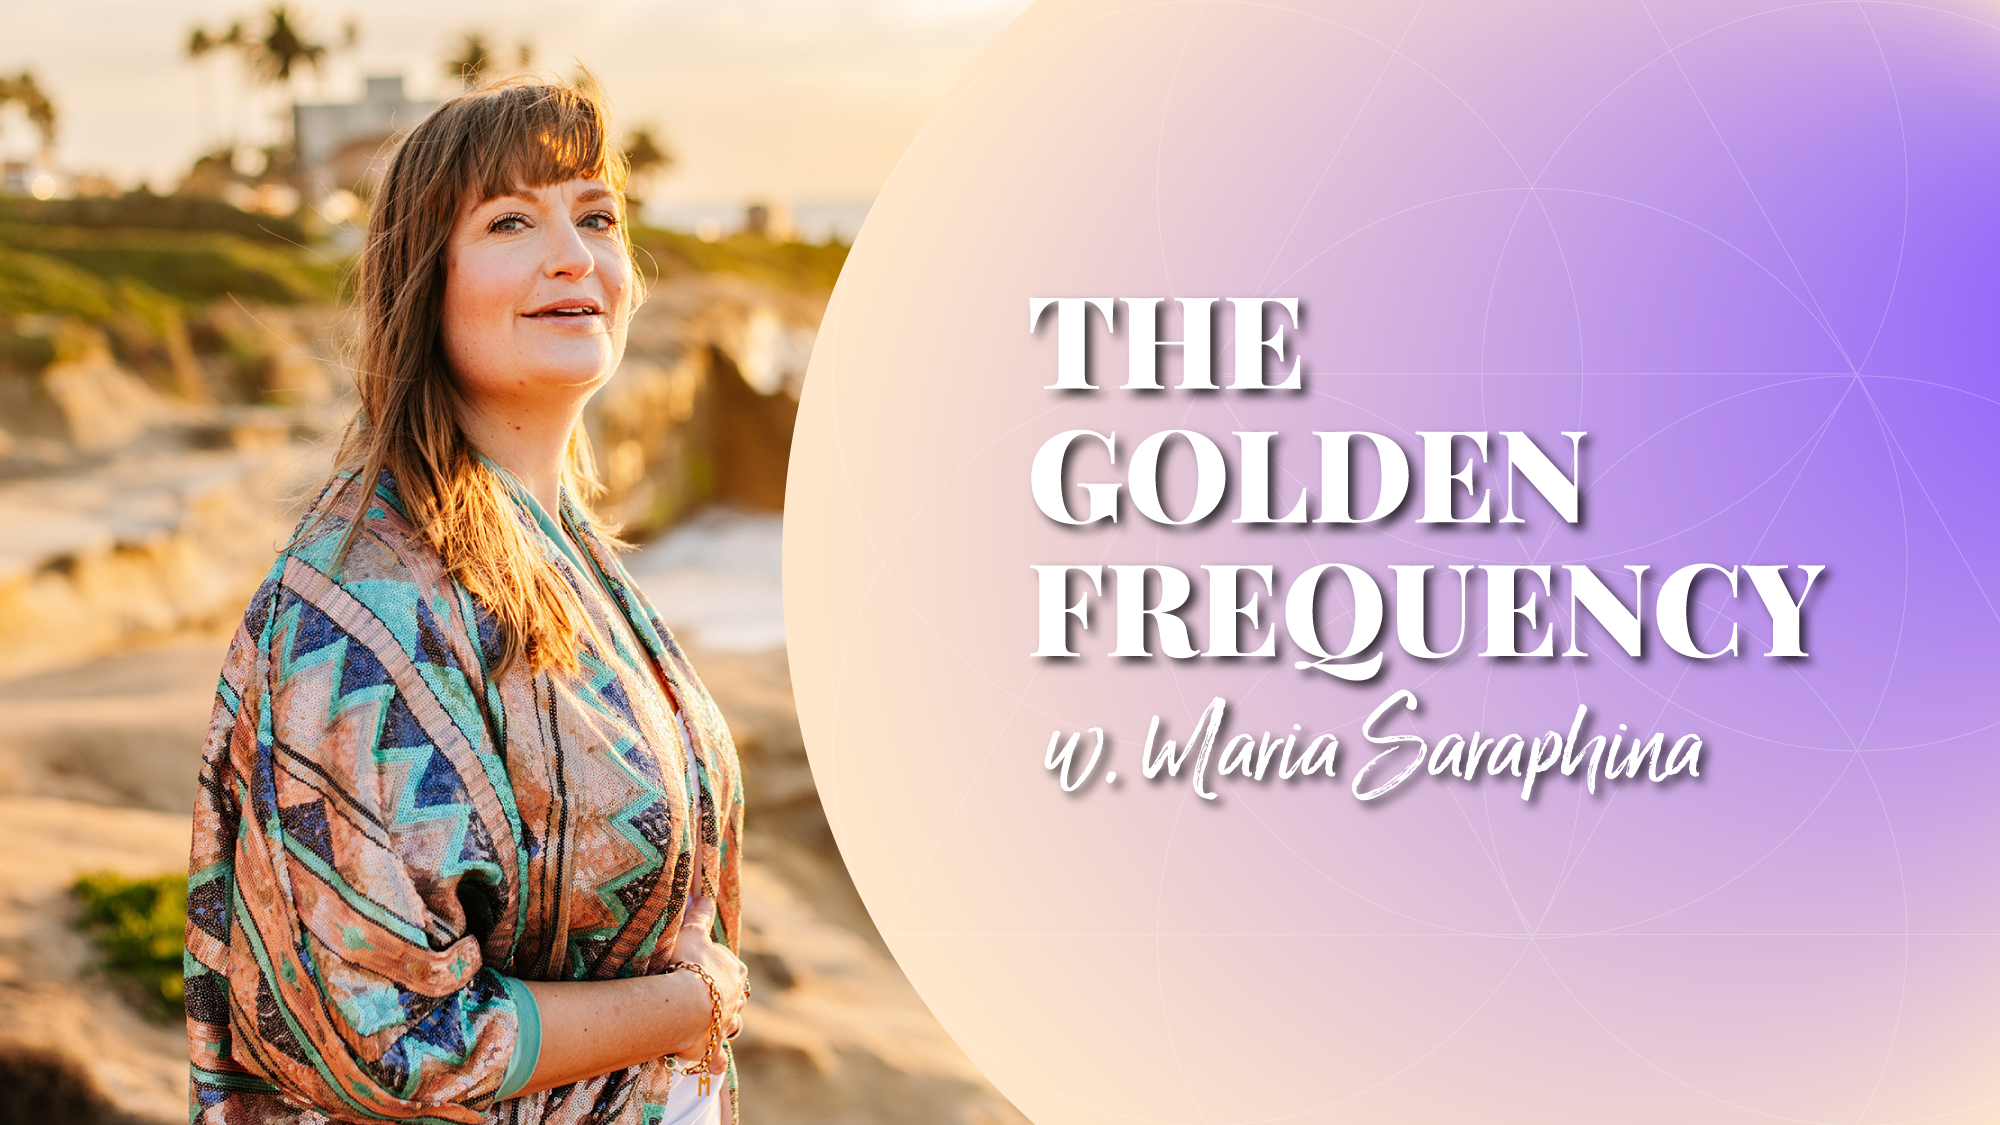 The Golden Frequency Show & Podcast, Spiritual Business Coach, Energy Alignment Method® Mentor, EAM Mentor, Maria Saraphina